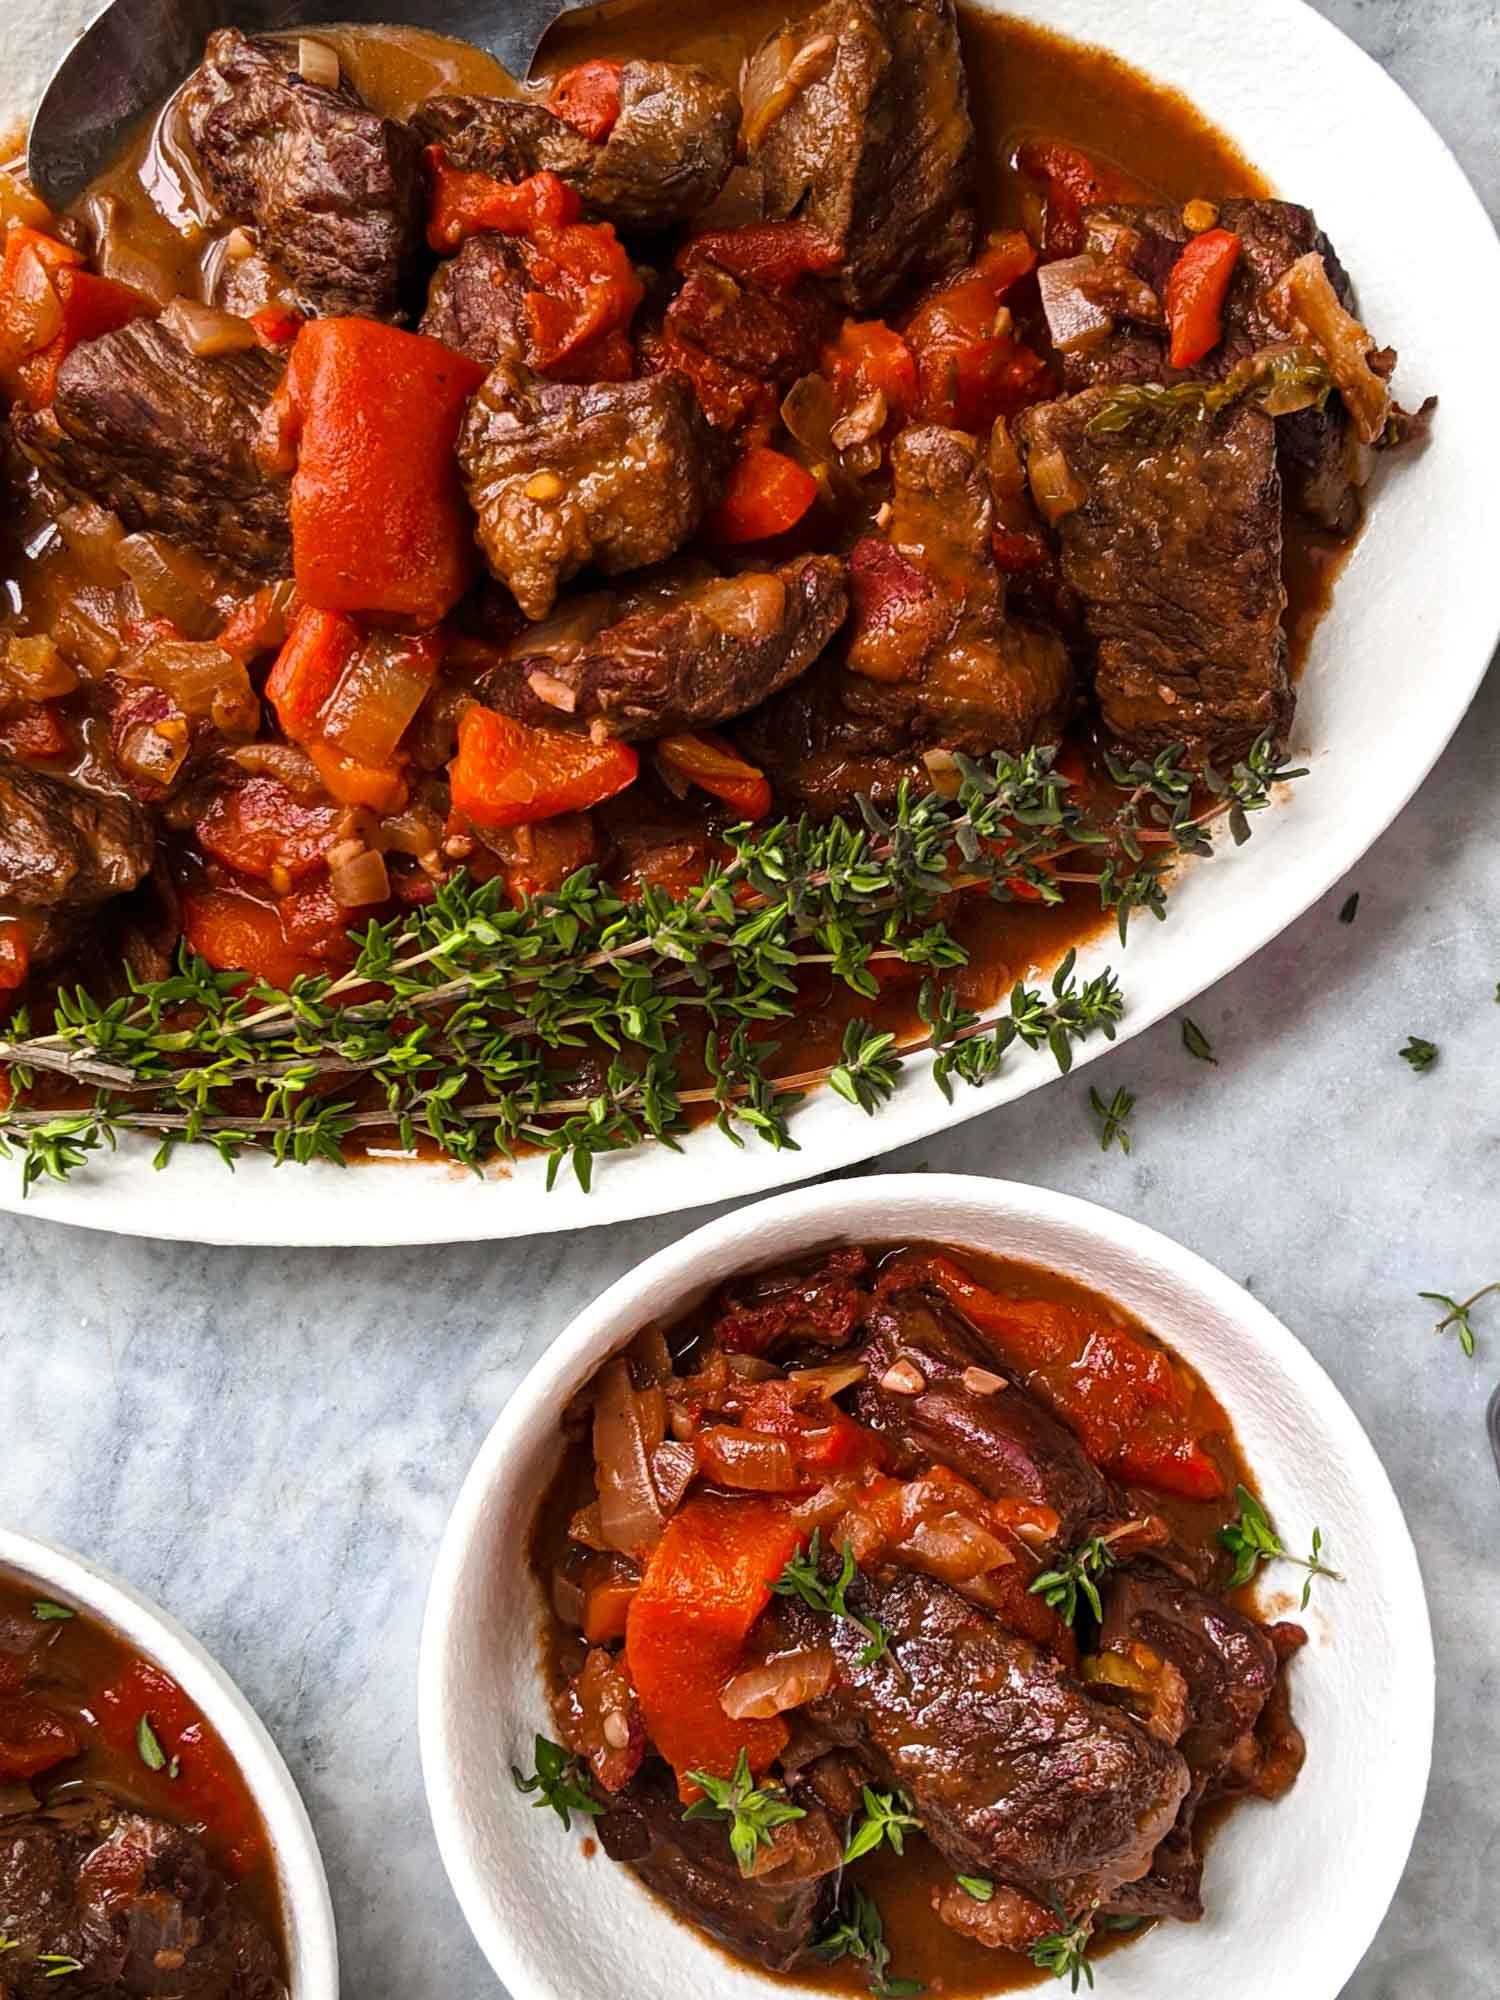 Red wine Spanish stew on white plates in a marble background